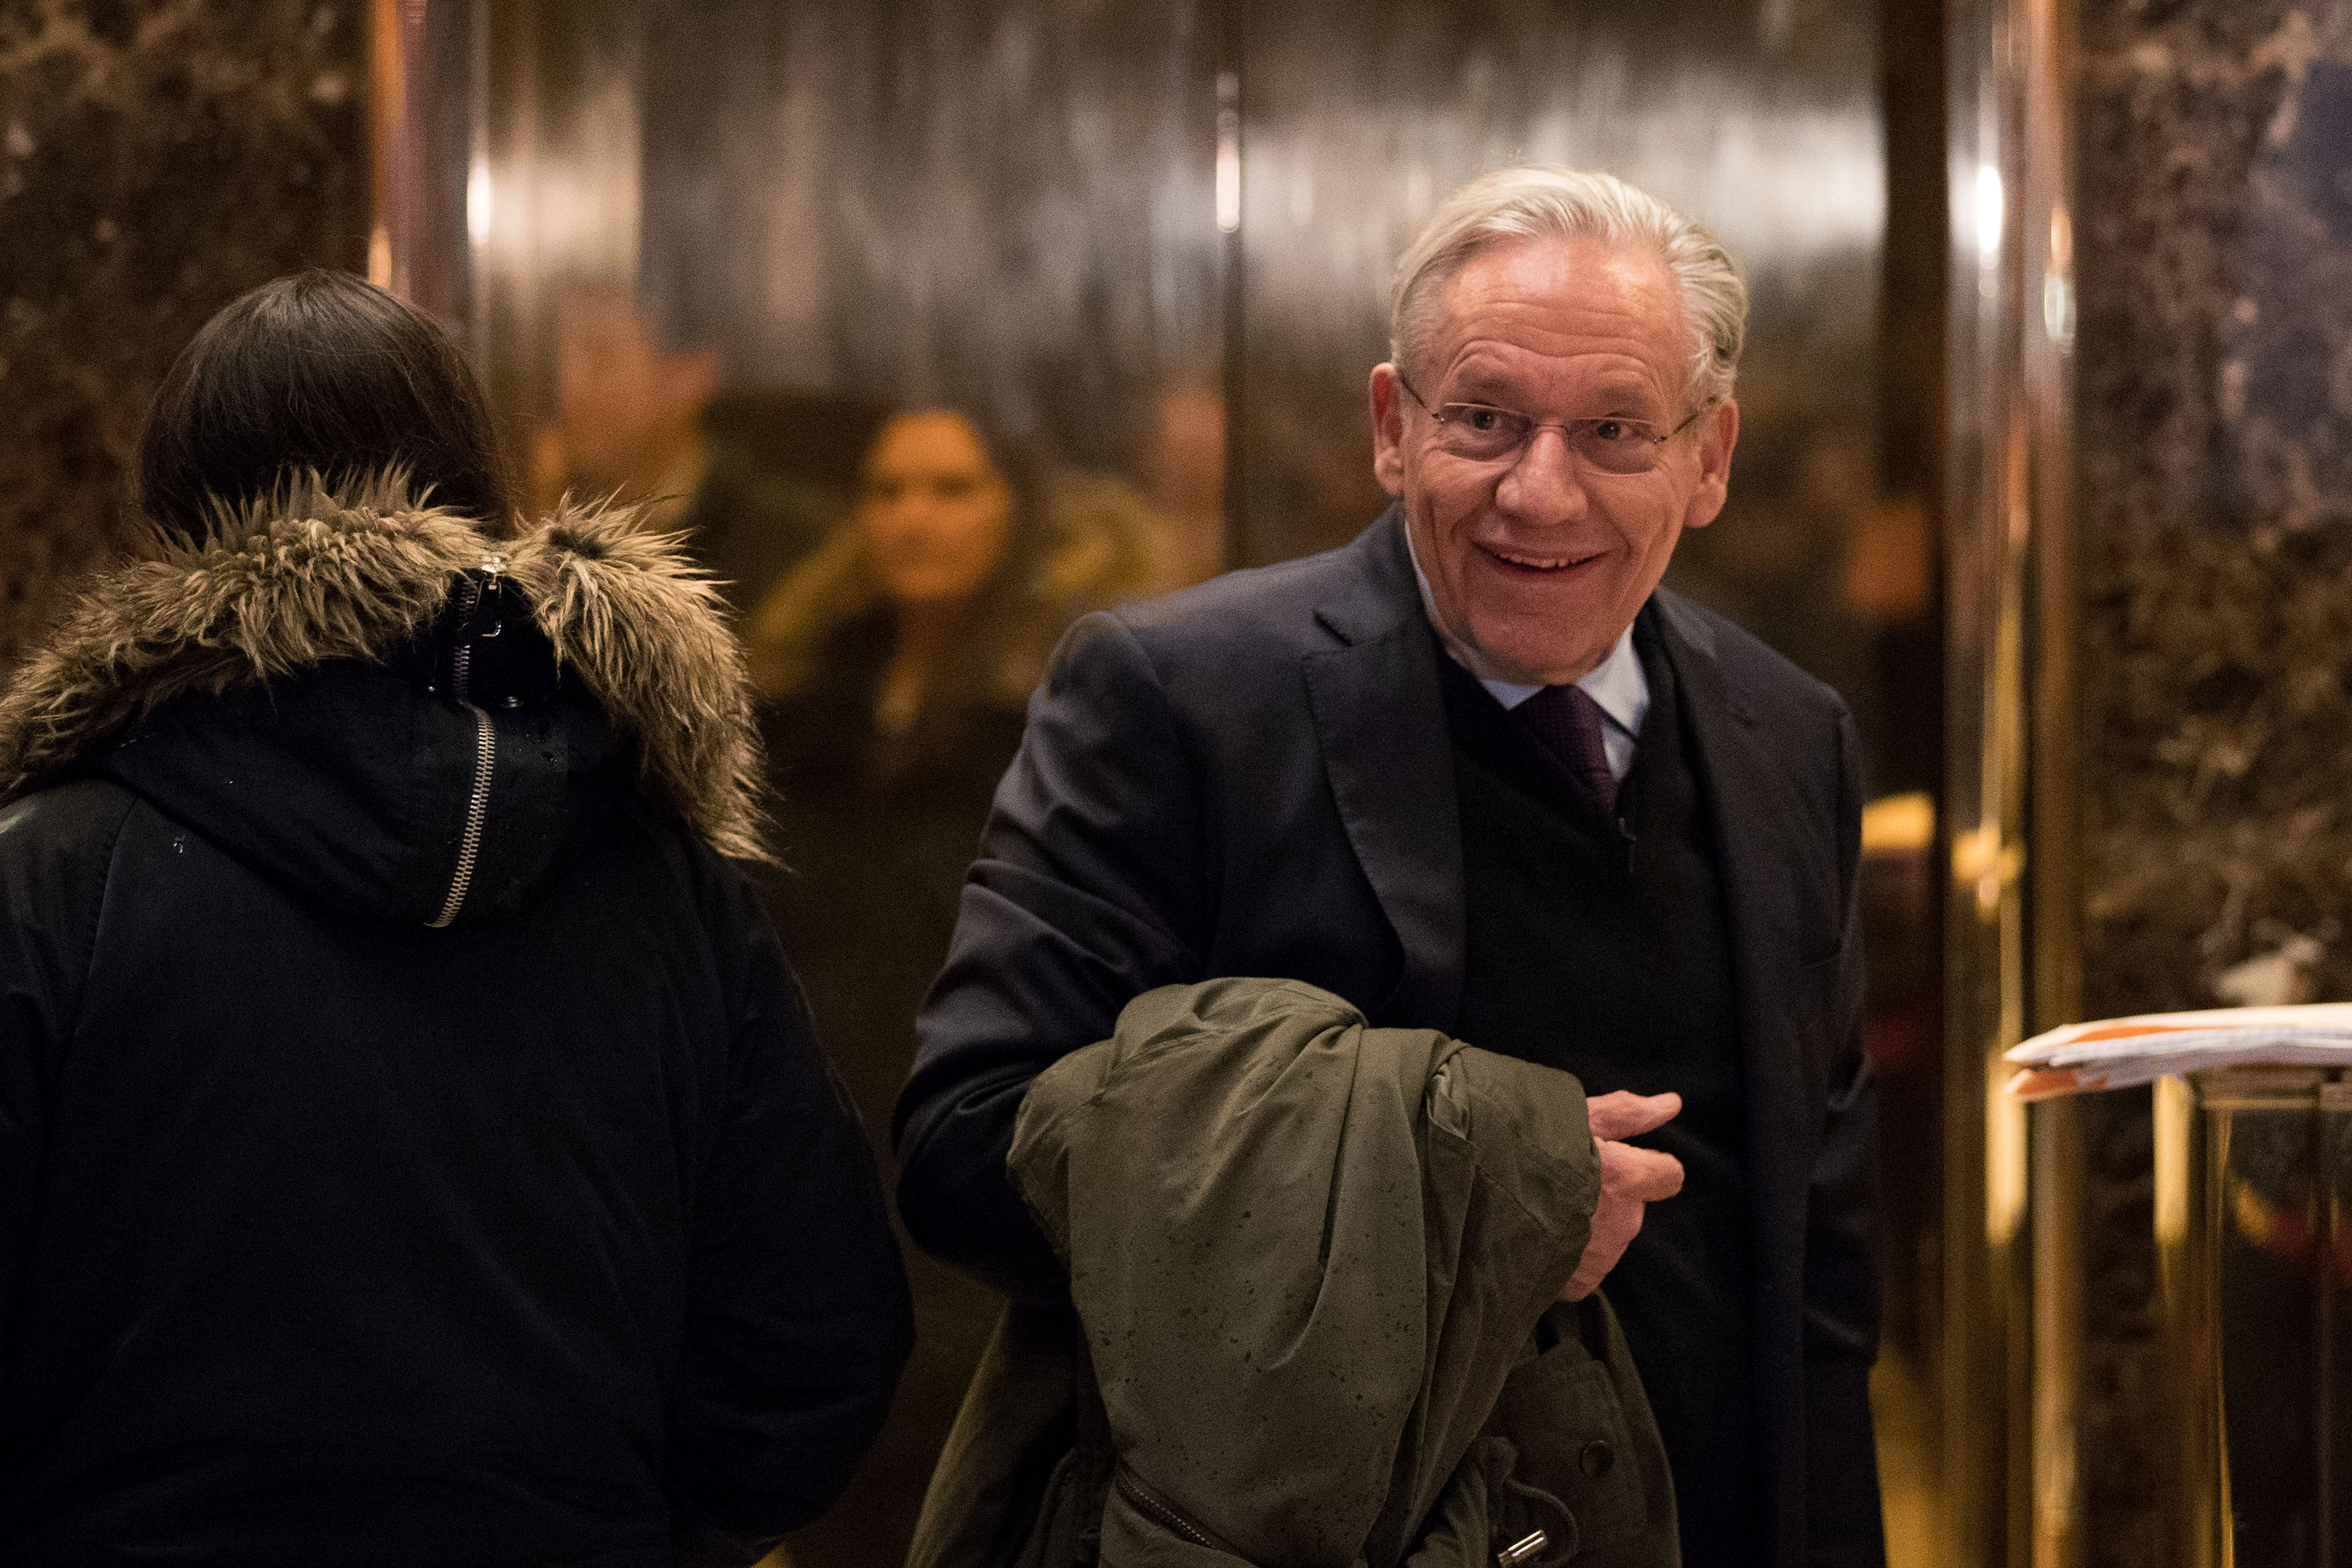 Bob Woodward's new book, Fear, explained